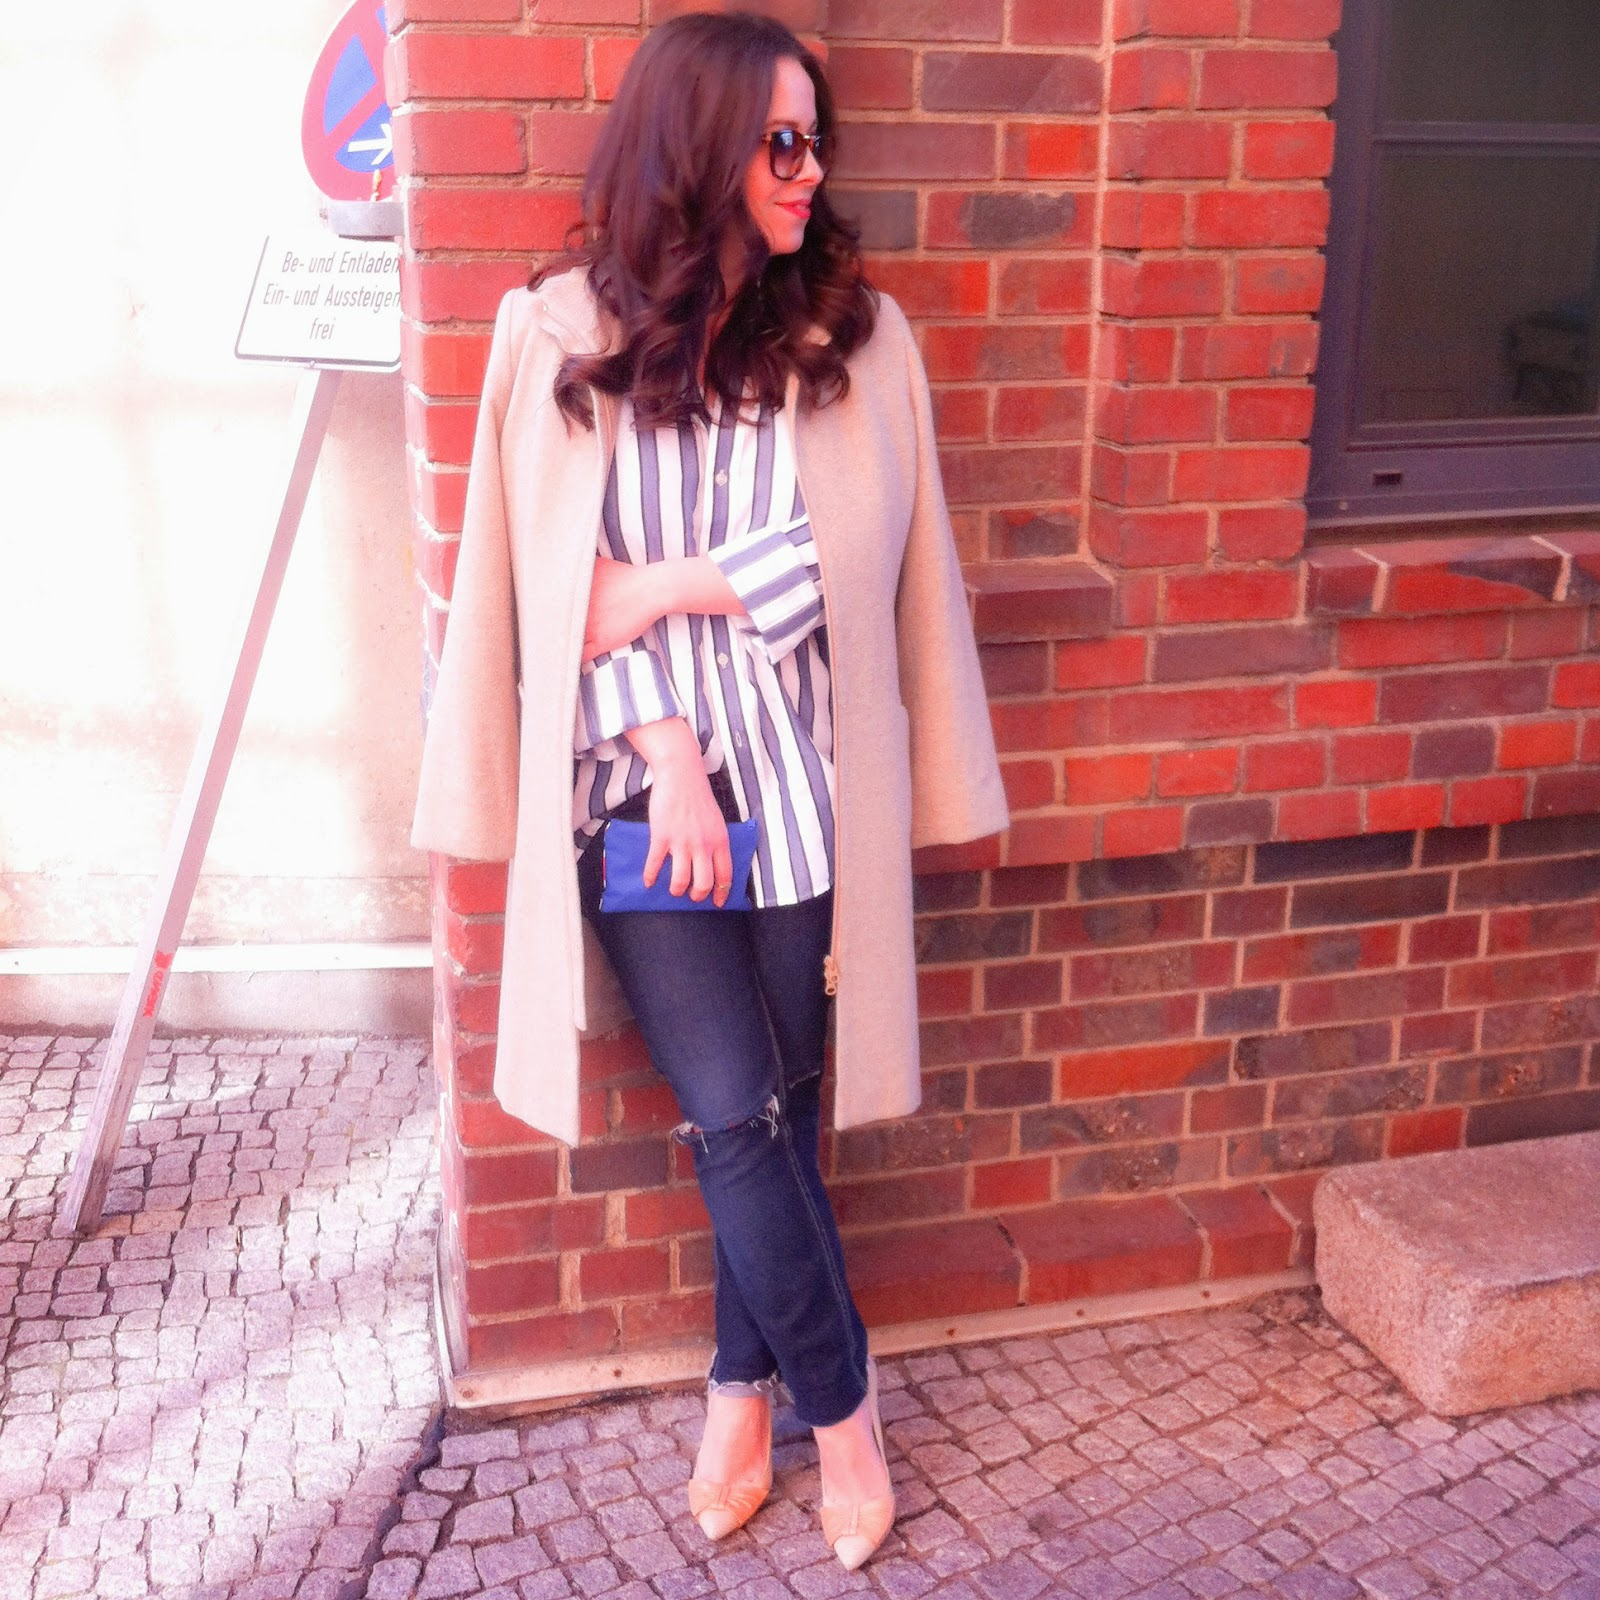 loose, manly striped shirt, ripped jeans, distressed jeans, nude pink pumps, clean style, simple outfit ootd, fashion blogger, vintage nude coat